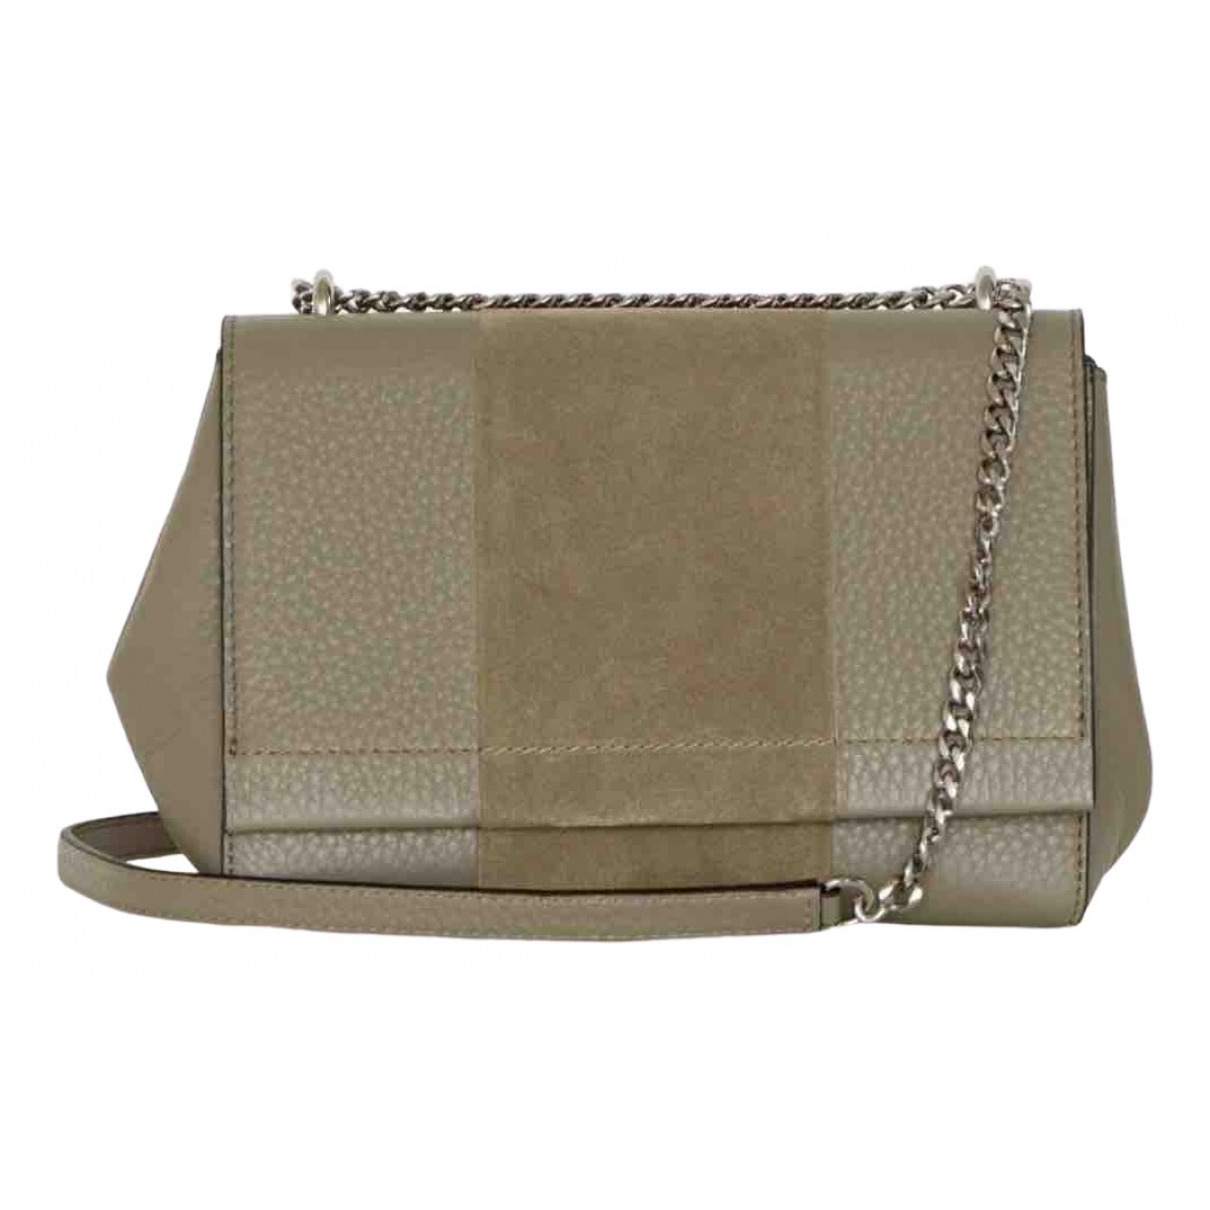 Decadent Copenhagen \N Khaki Leather handbag for Women \N